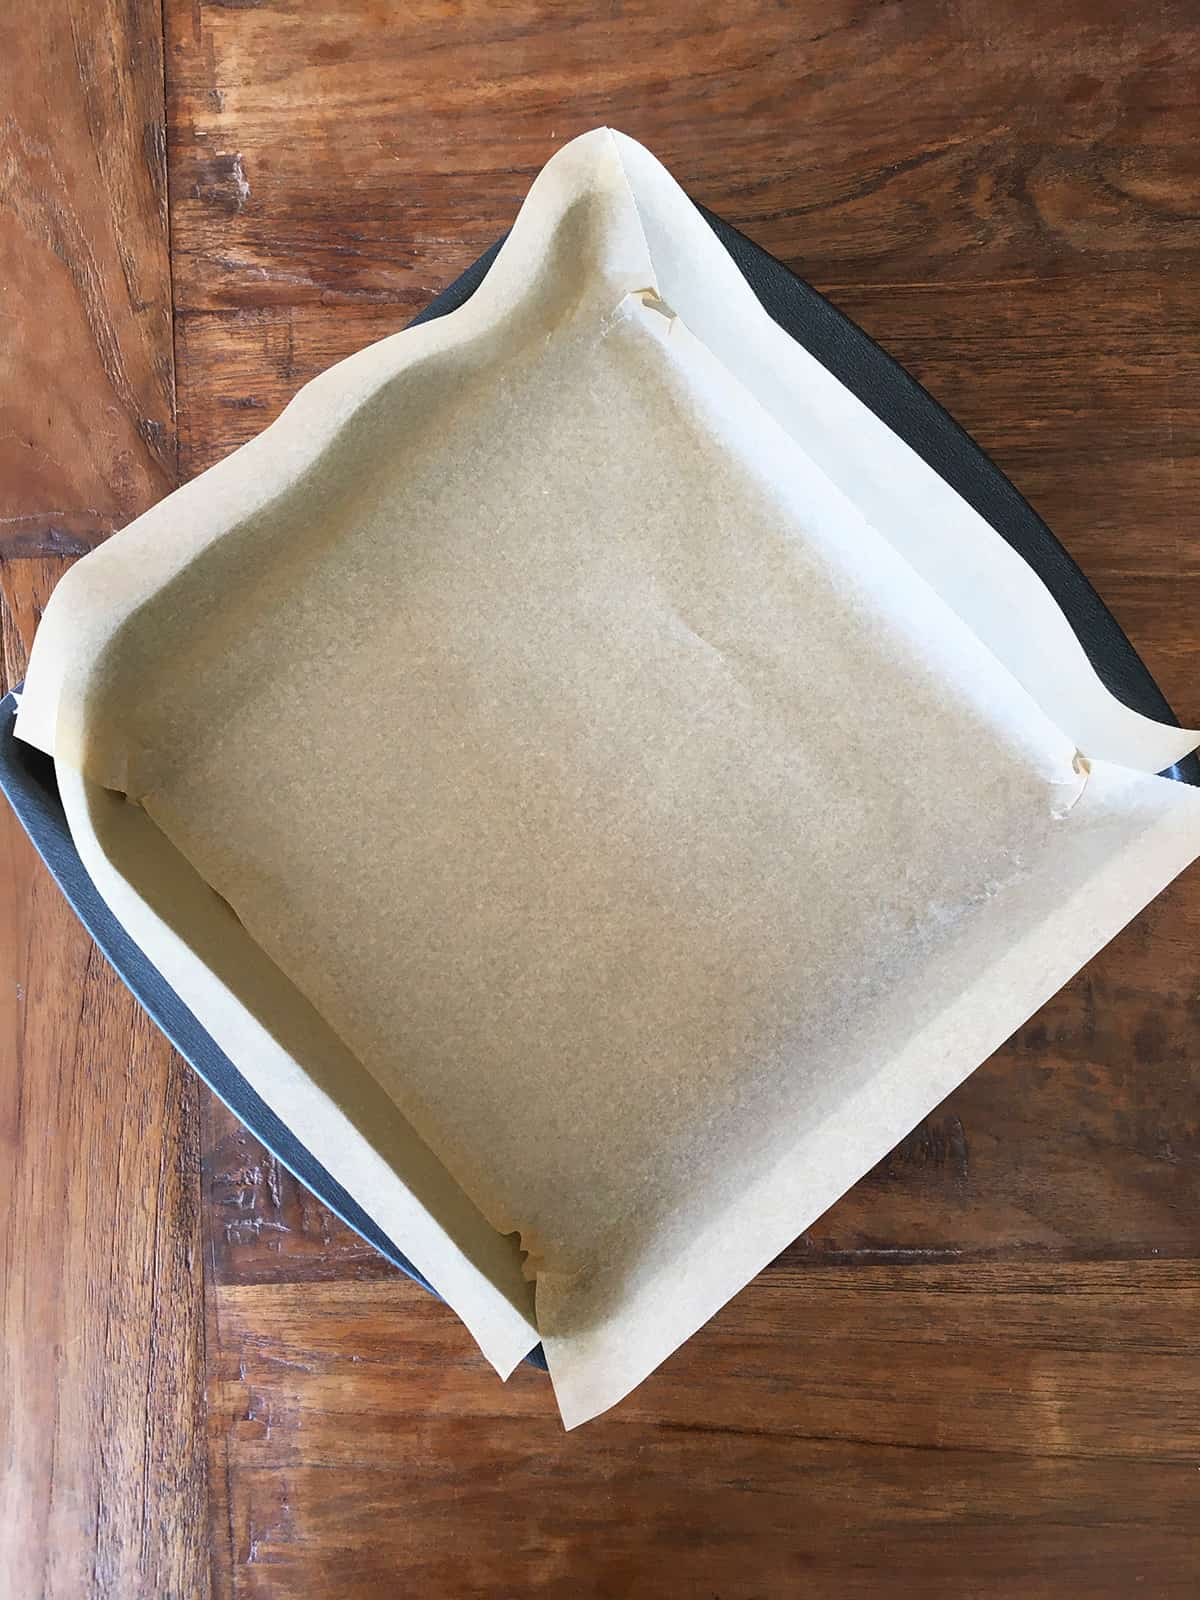 Square metal pan lined with parchment paper on a brown wood table